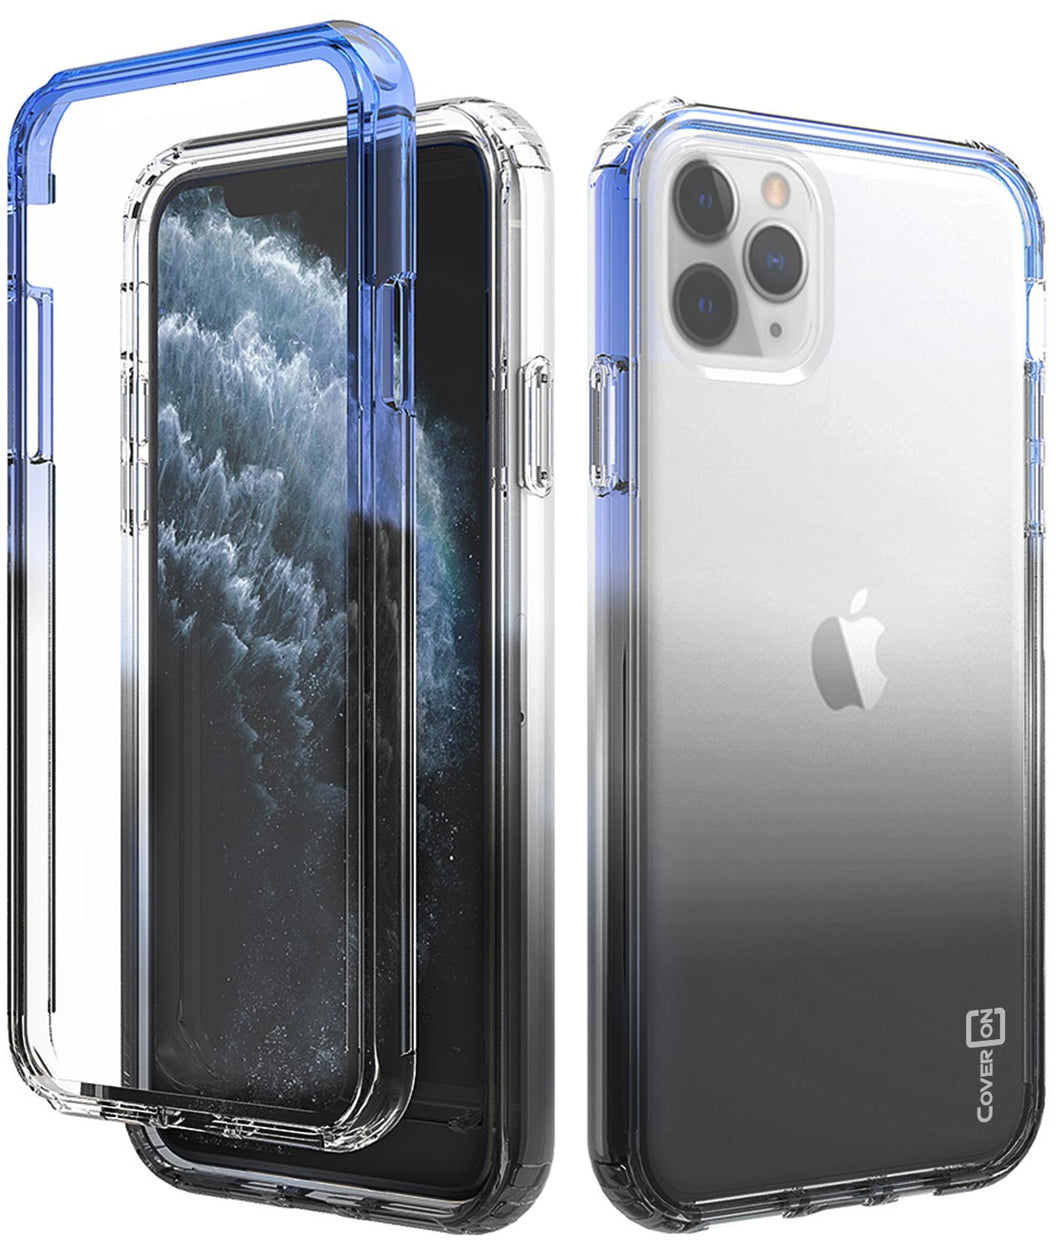 iPhone 11 Pro Clear Case - Full Body Colorful Phone Cover - Gradient Series